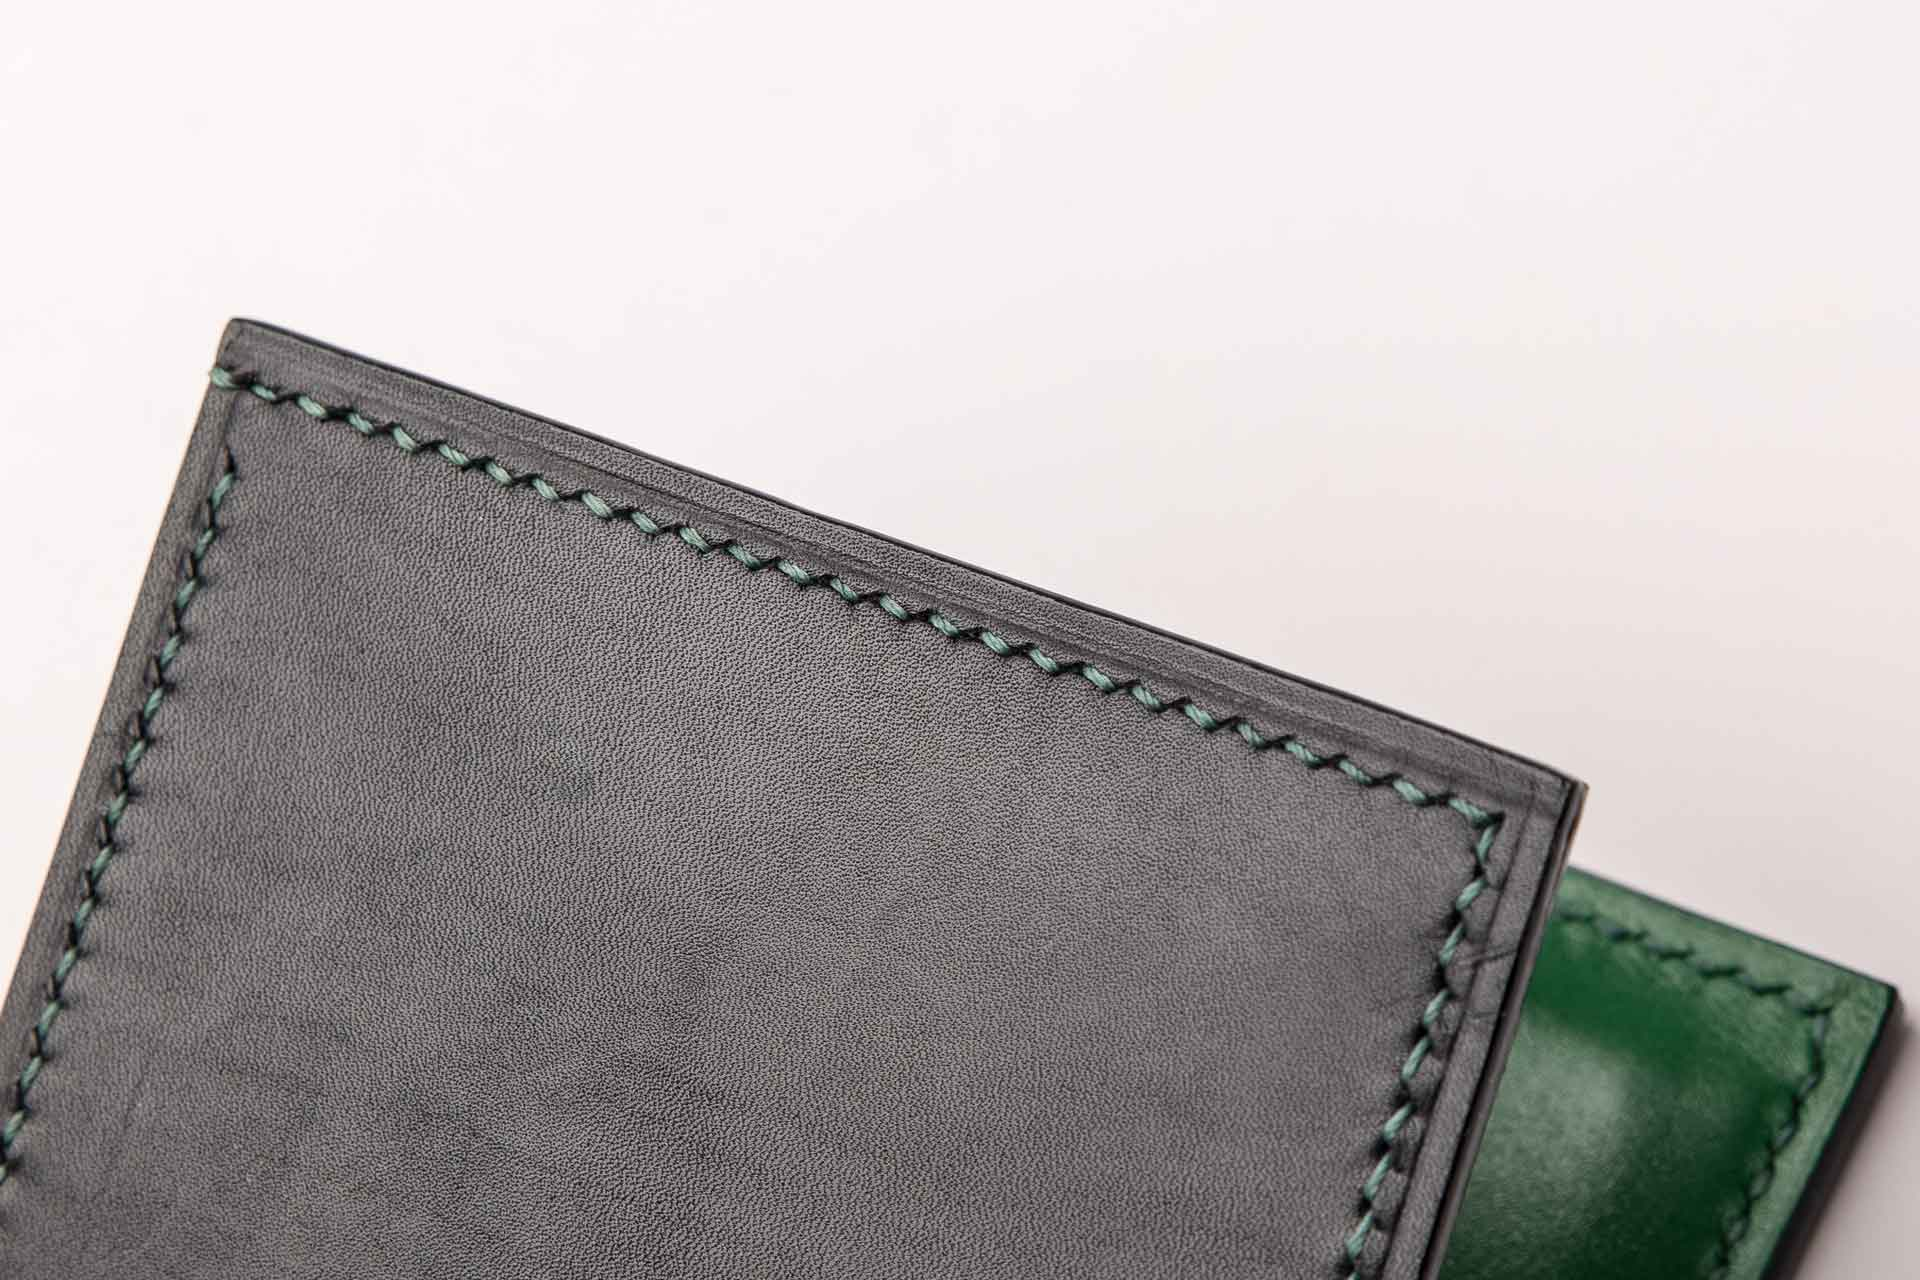 The highlight of the wallet is the hand-sewn seams, showing the feast of the workers.